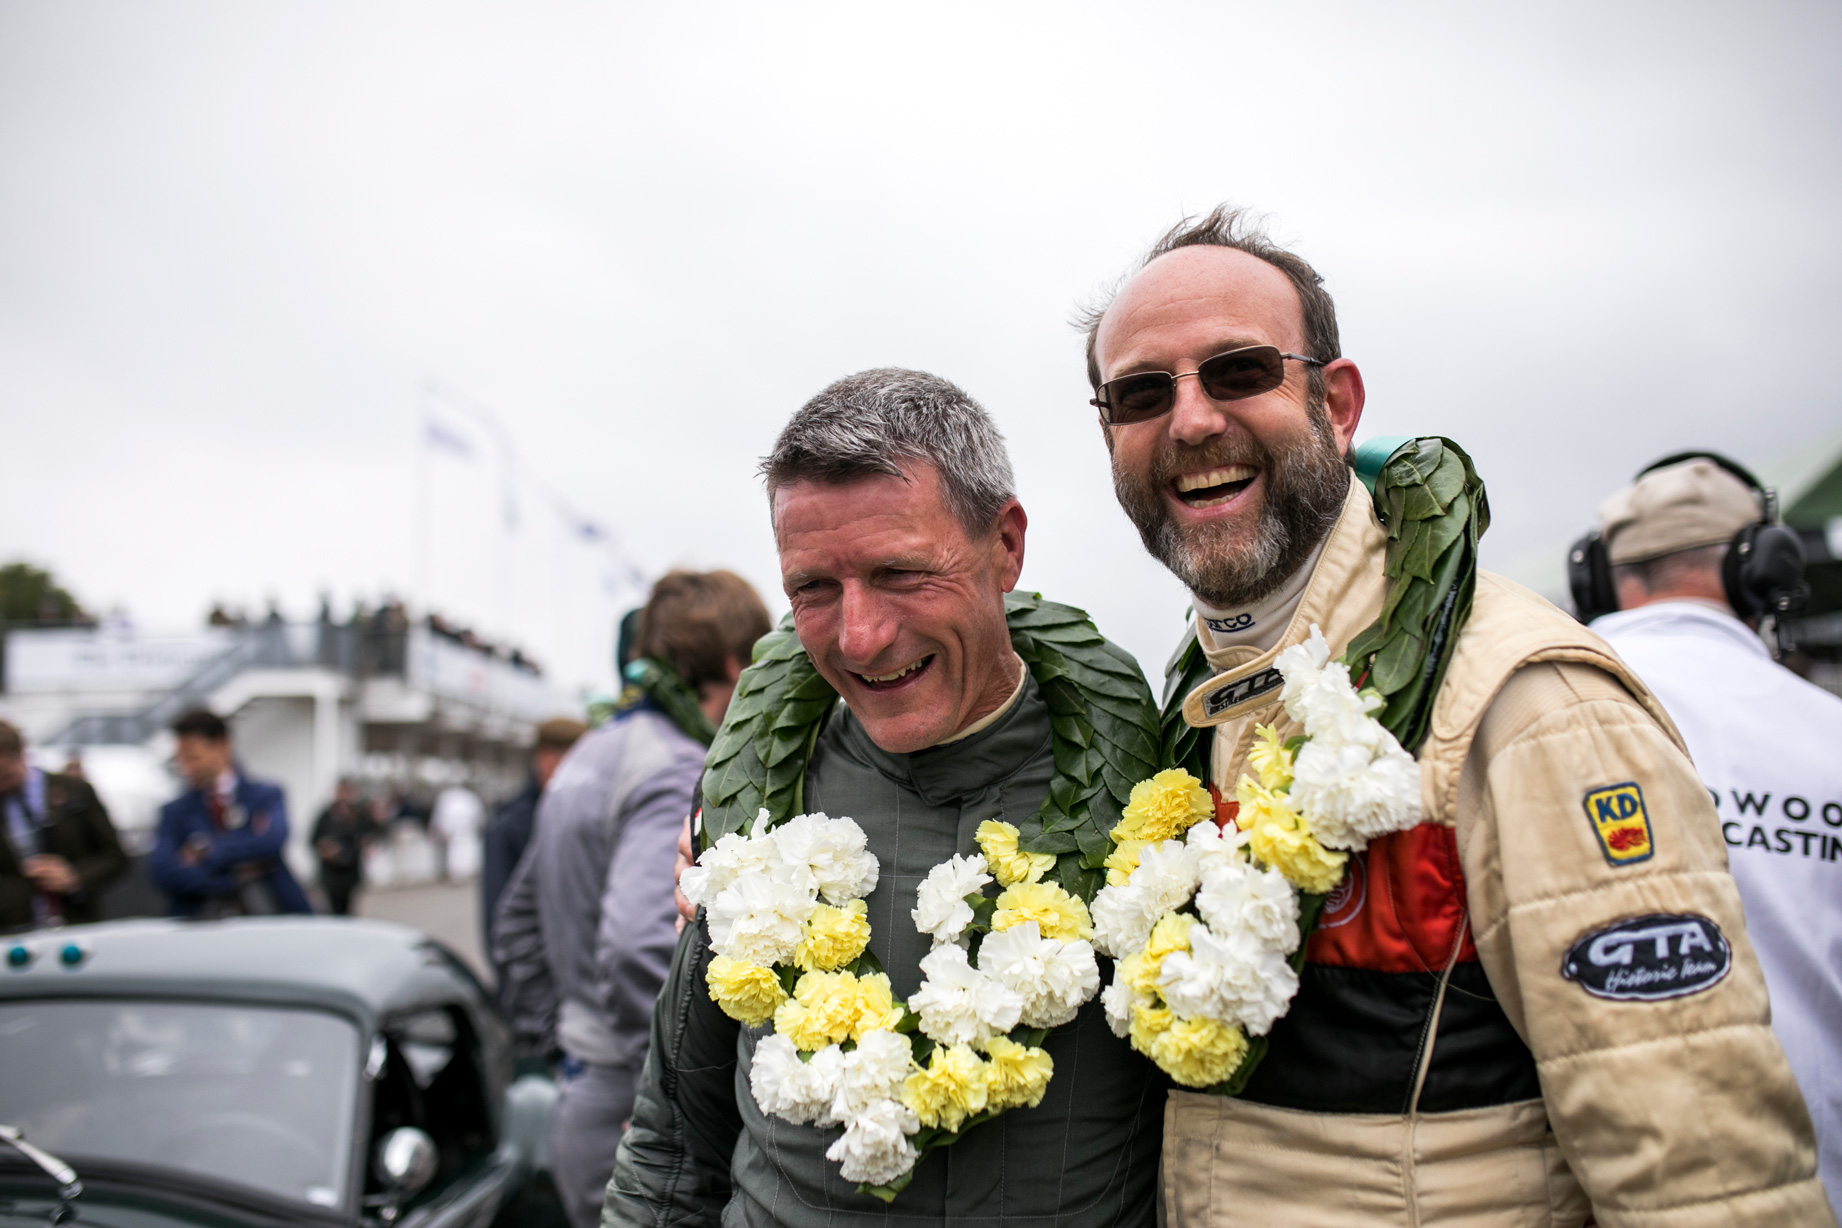 famous racing drivers winning tt race